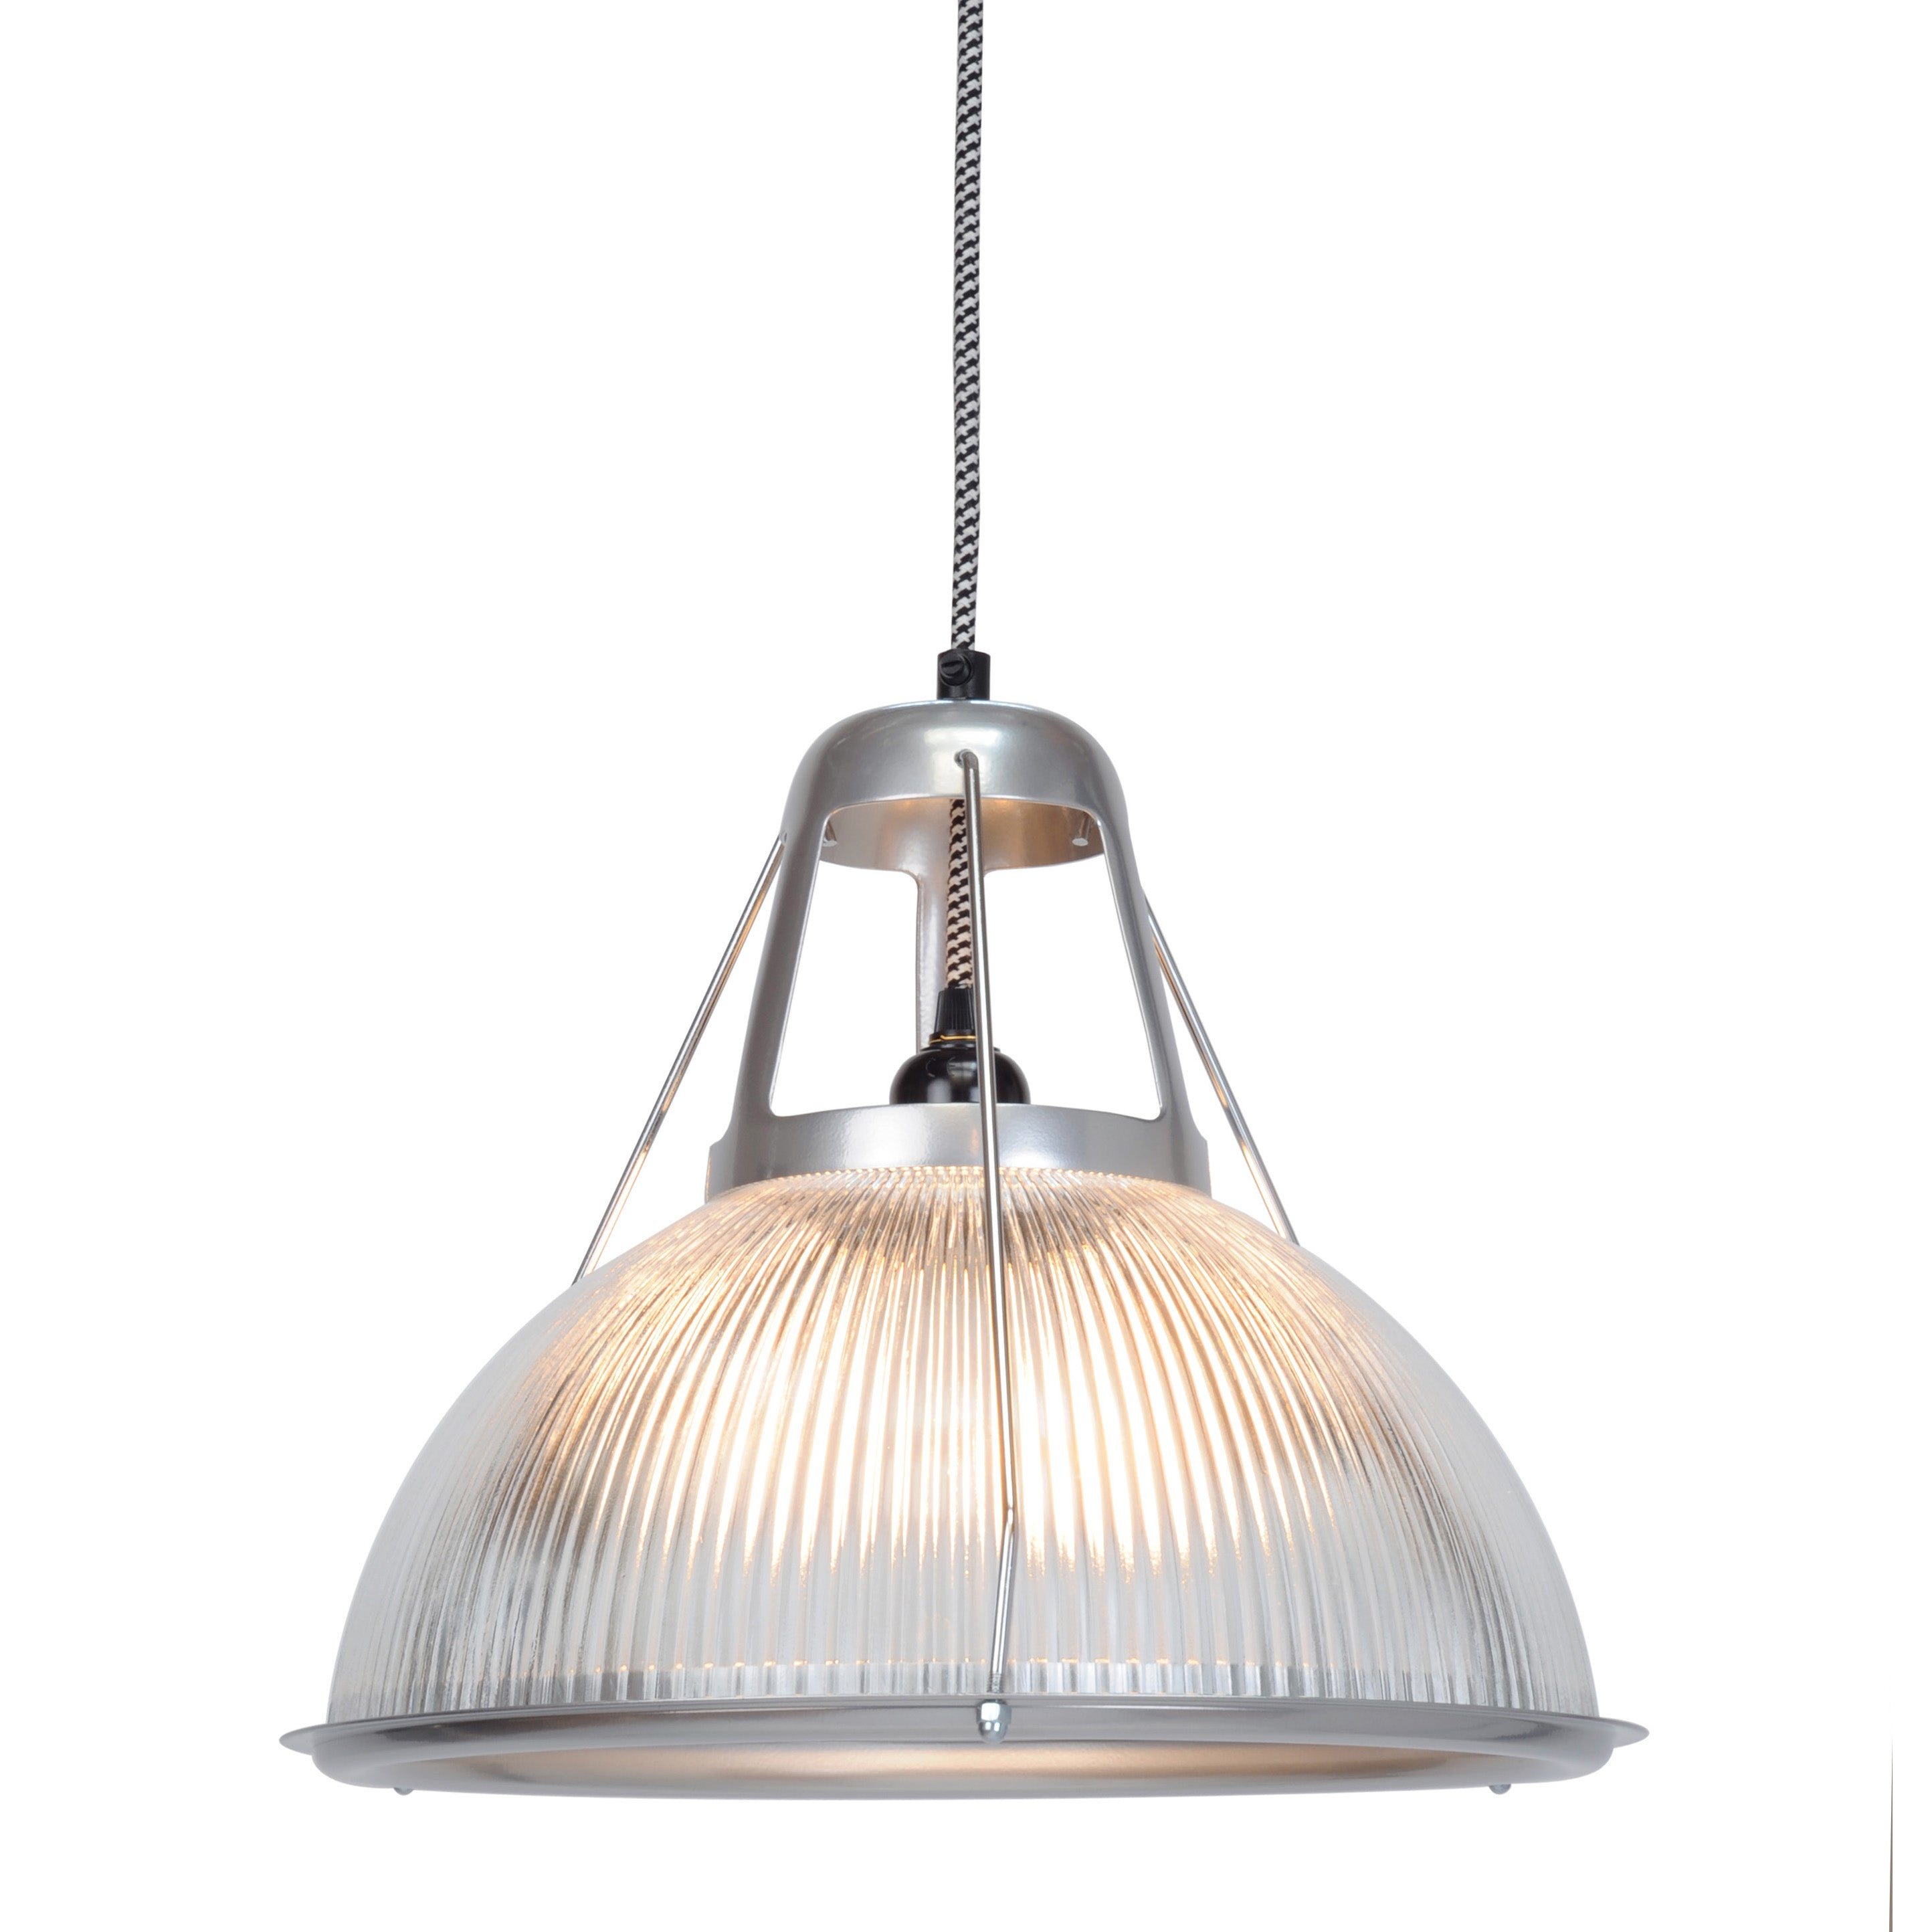 Original BTC Phane prismatic pendant lamp in moulded glass from Warehouse Home